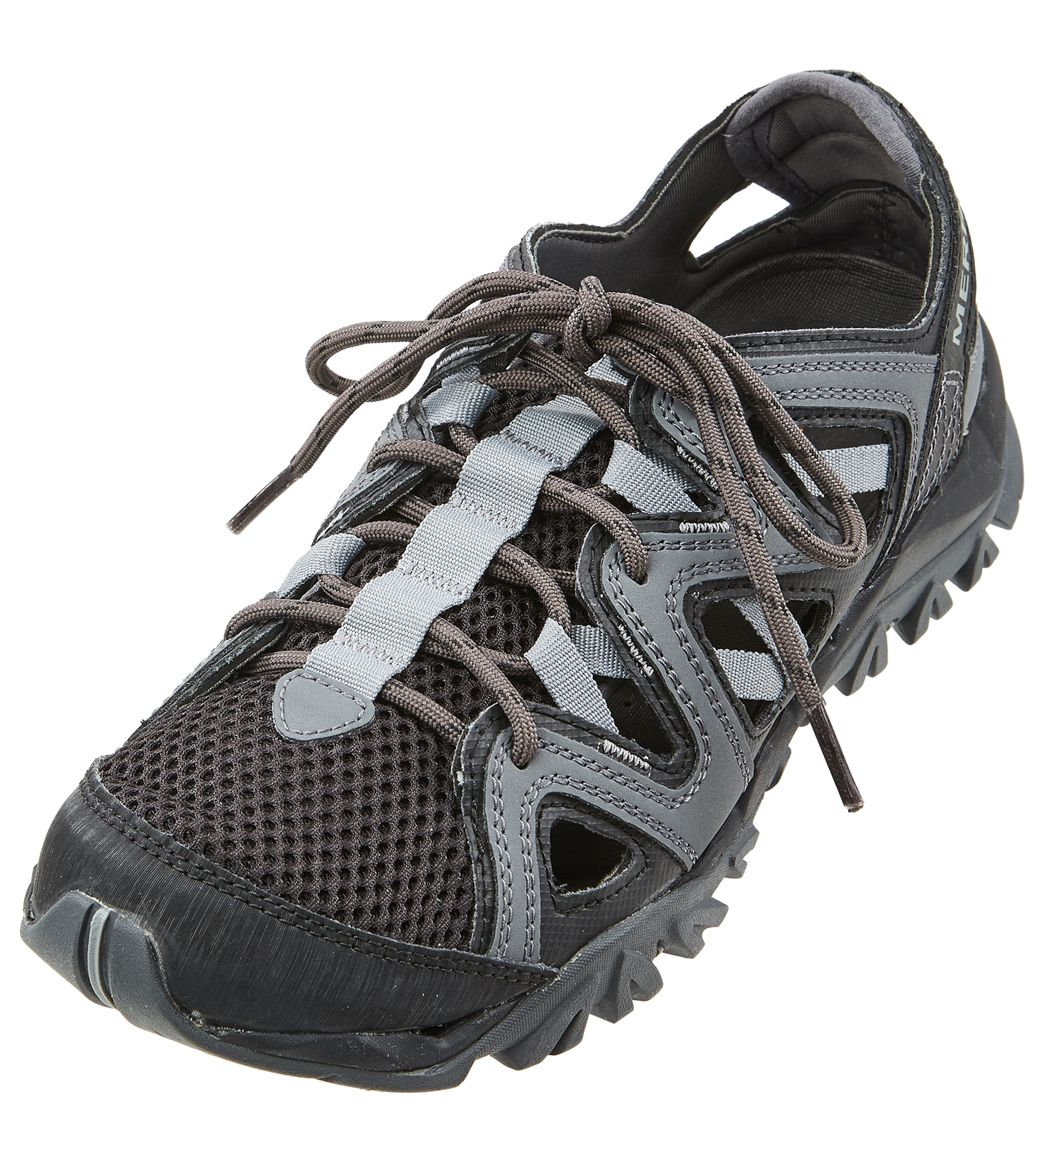 f6c912cee70c Merrell Men s Tetrex Crest Wrap Water Shoe at SwimOutlet.com - Free Shipping